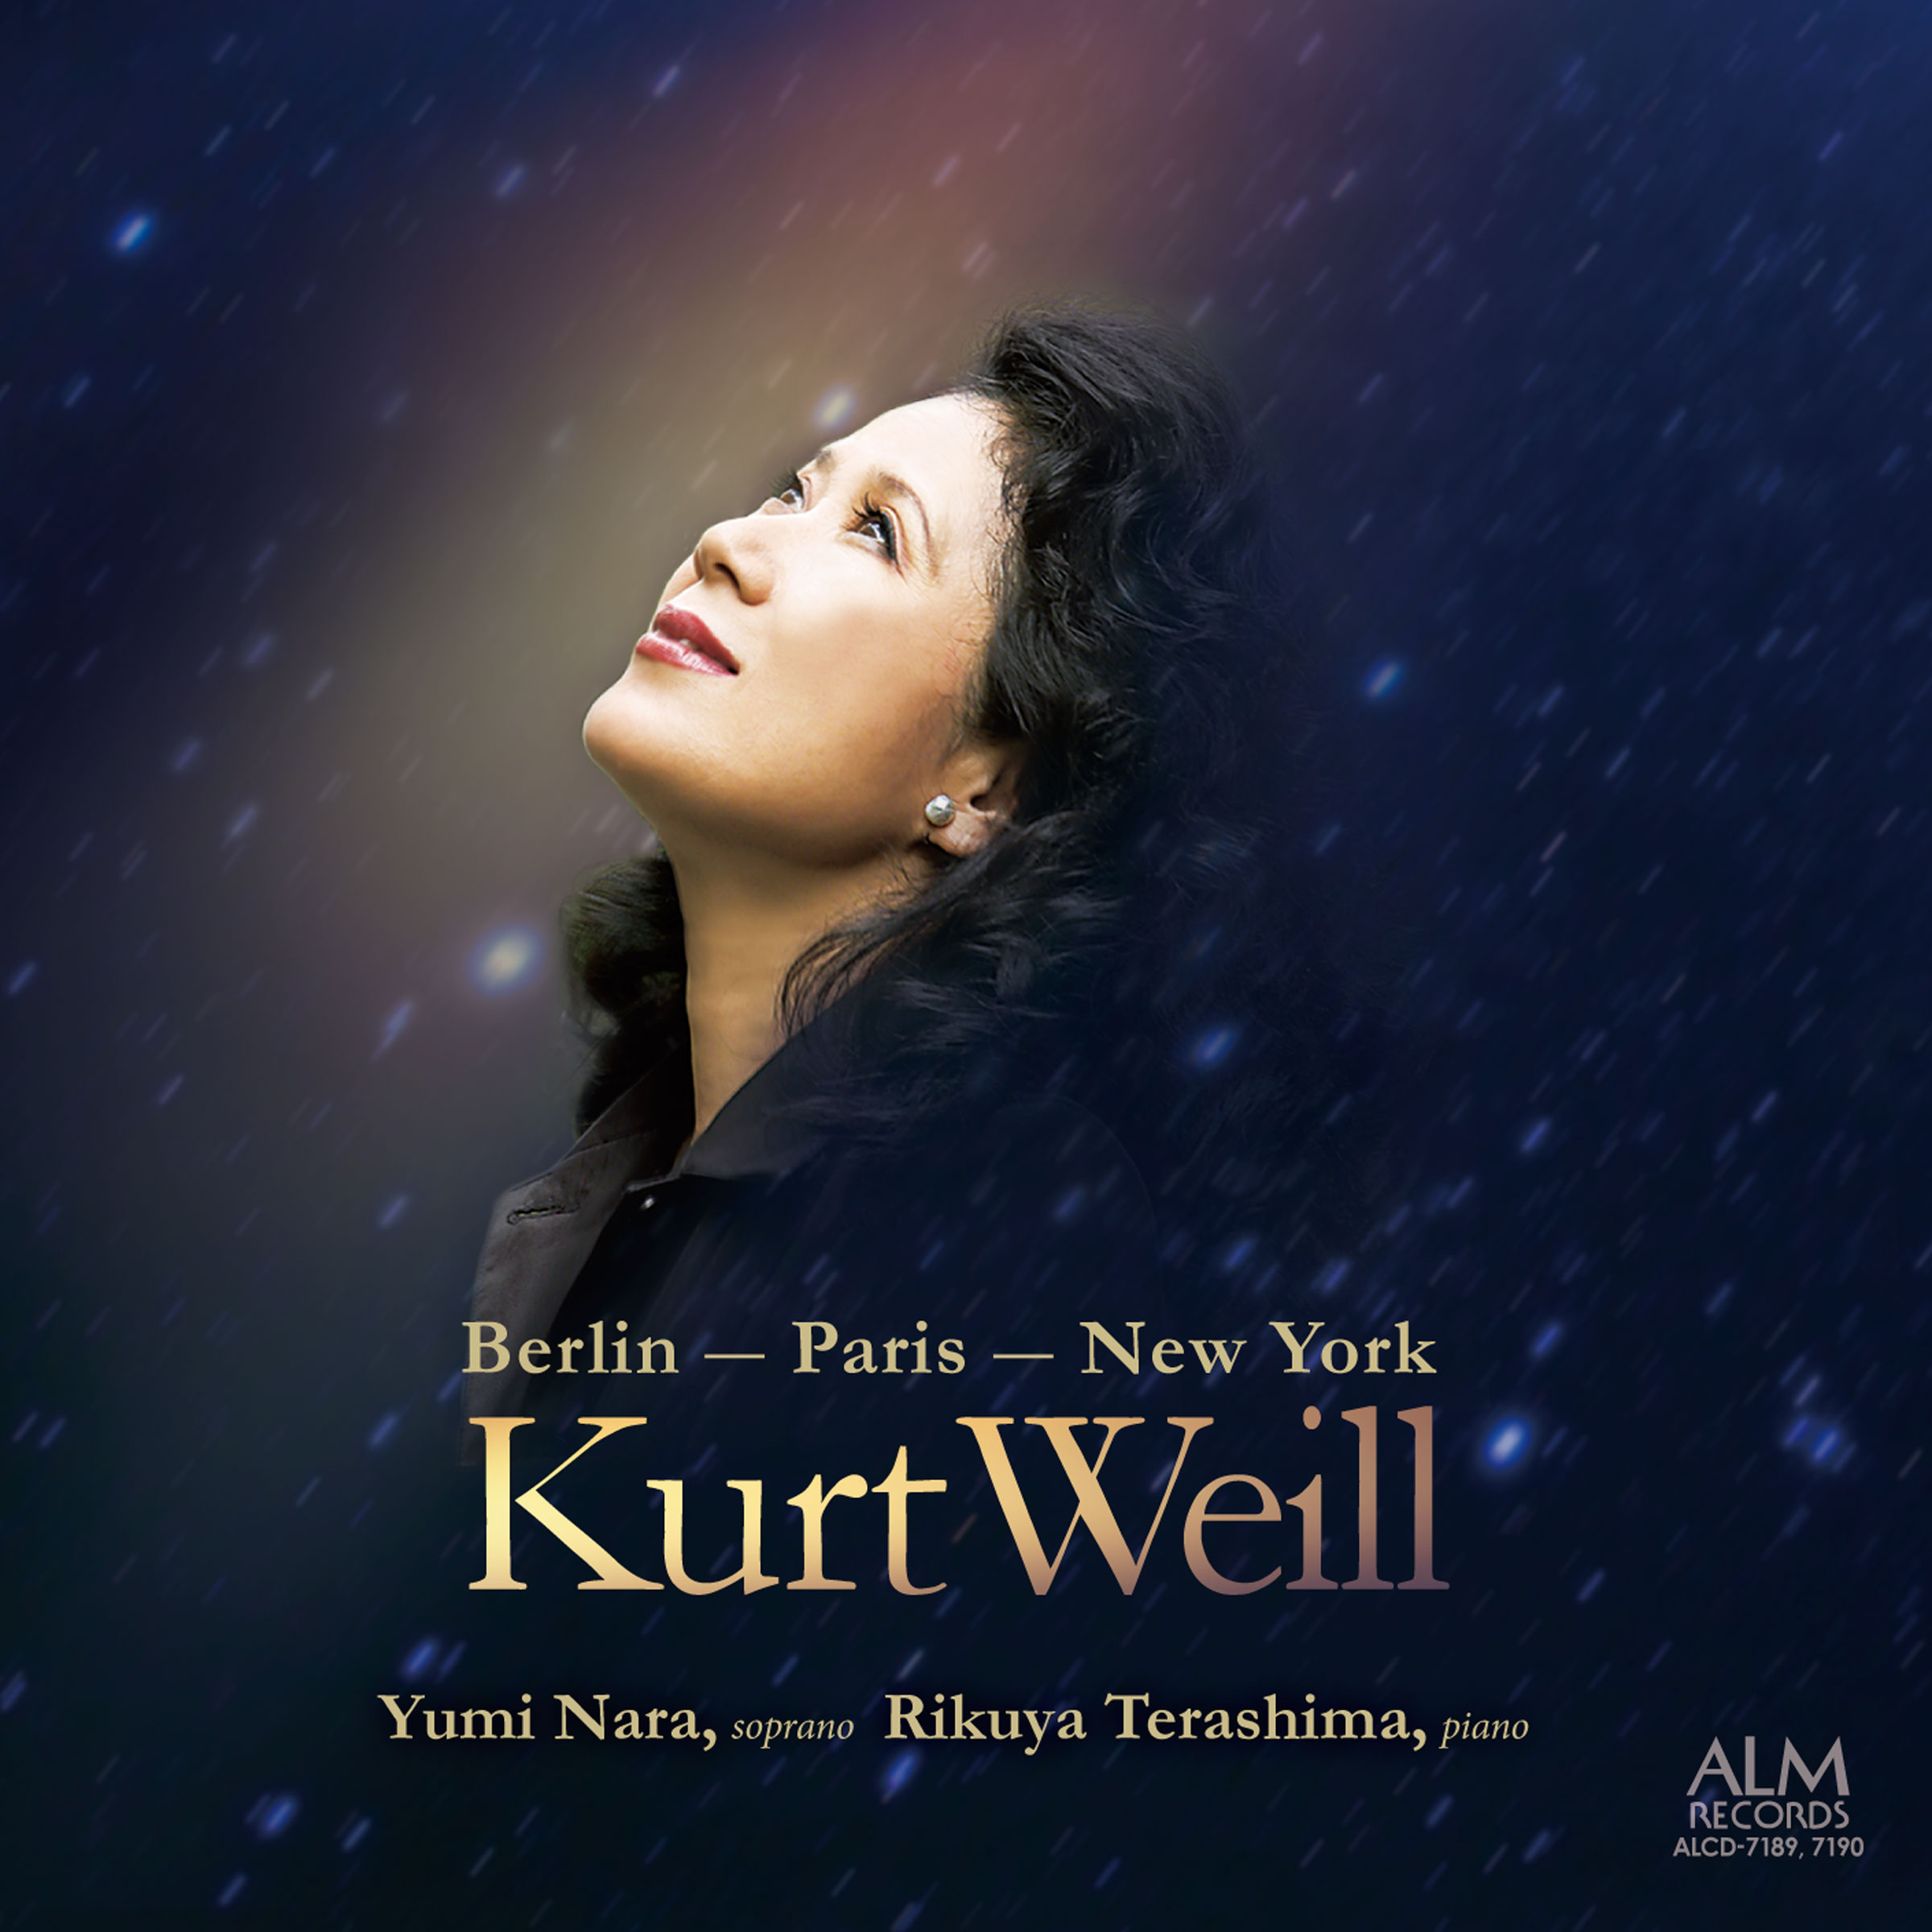 Weill CD cover